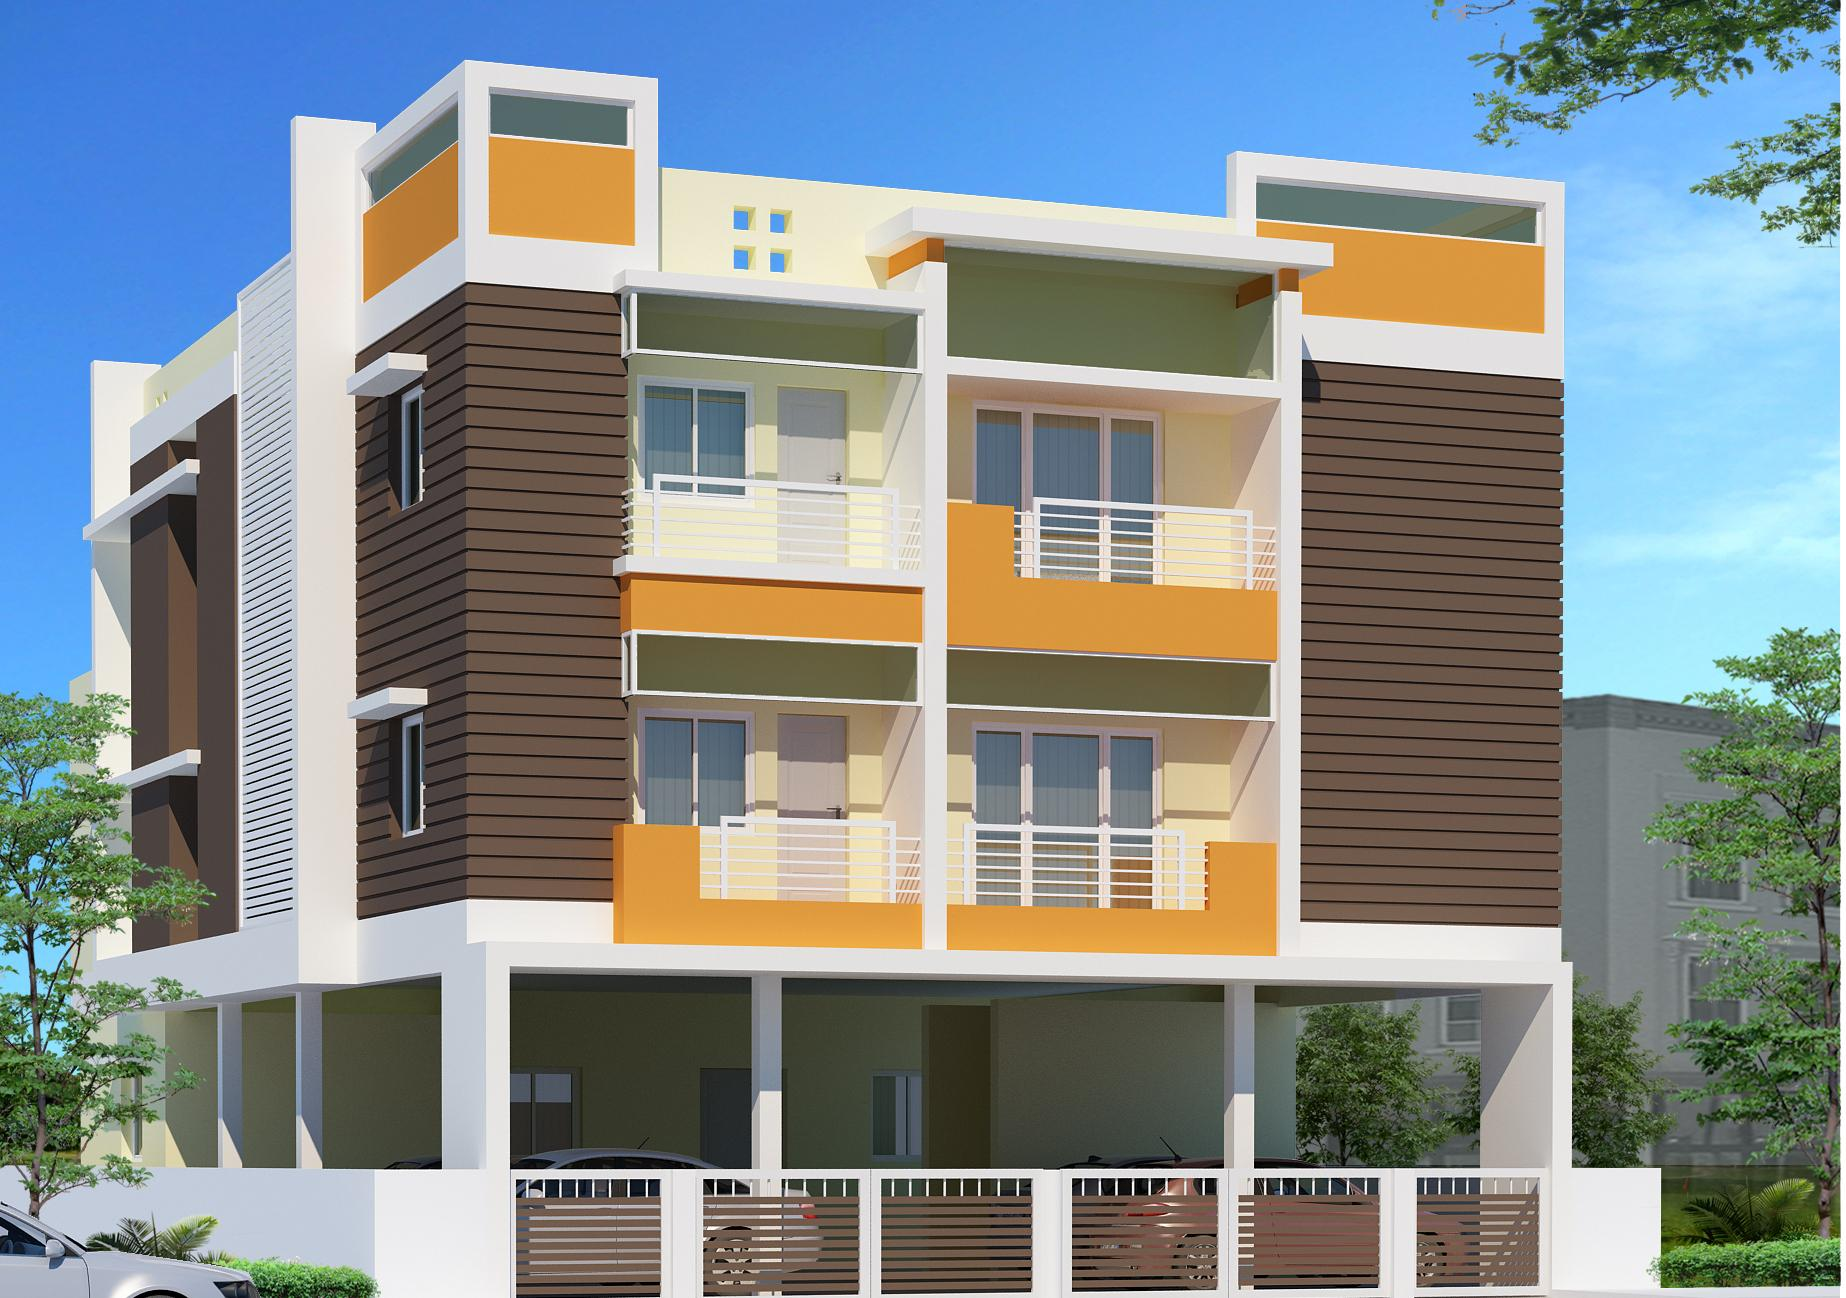 Front Elevation Of Three Storied Houses : Contemporary two story office building elevations joy